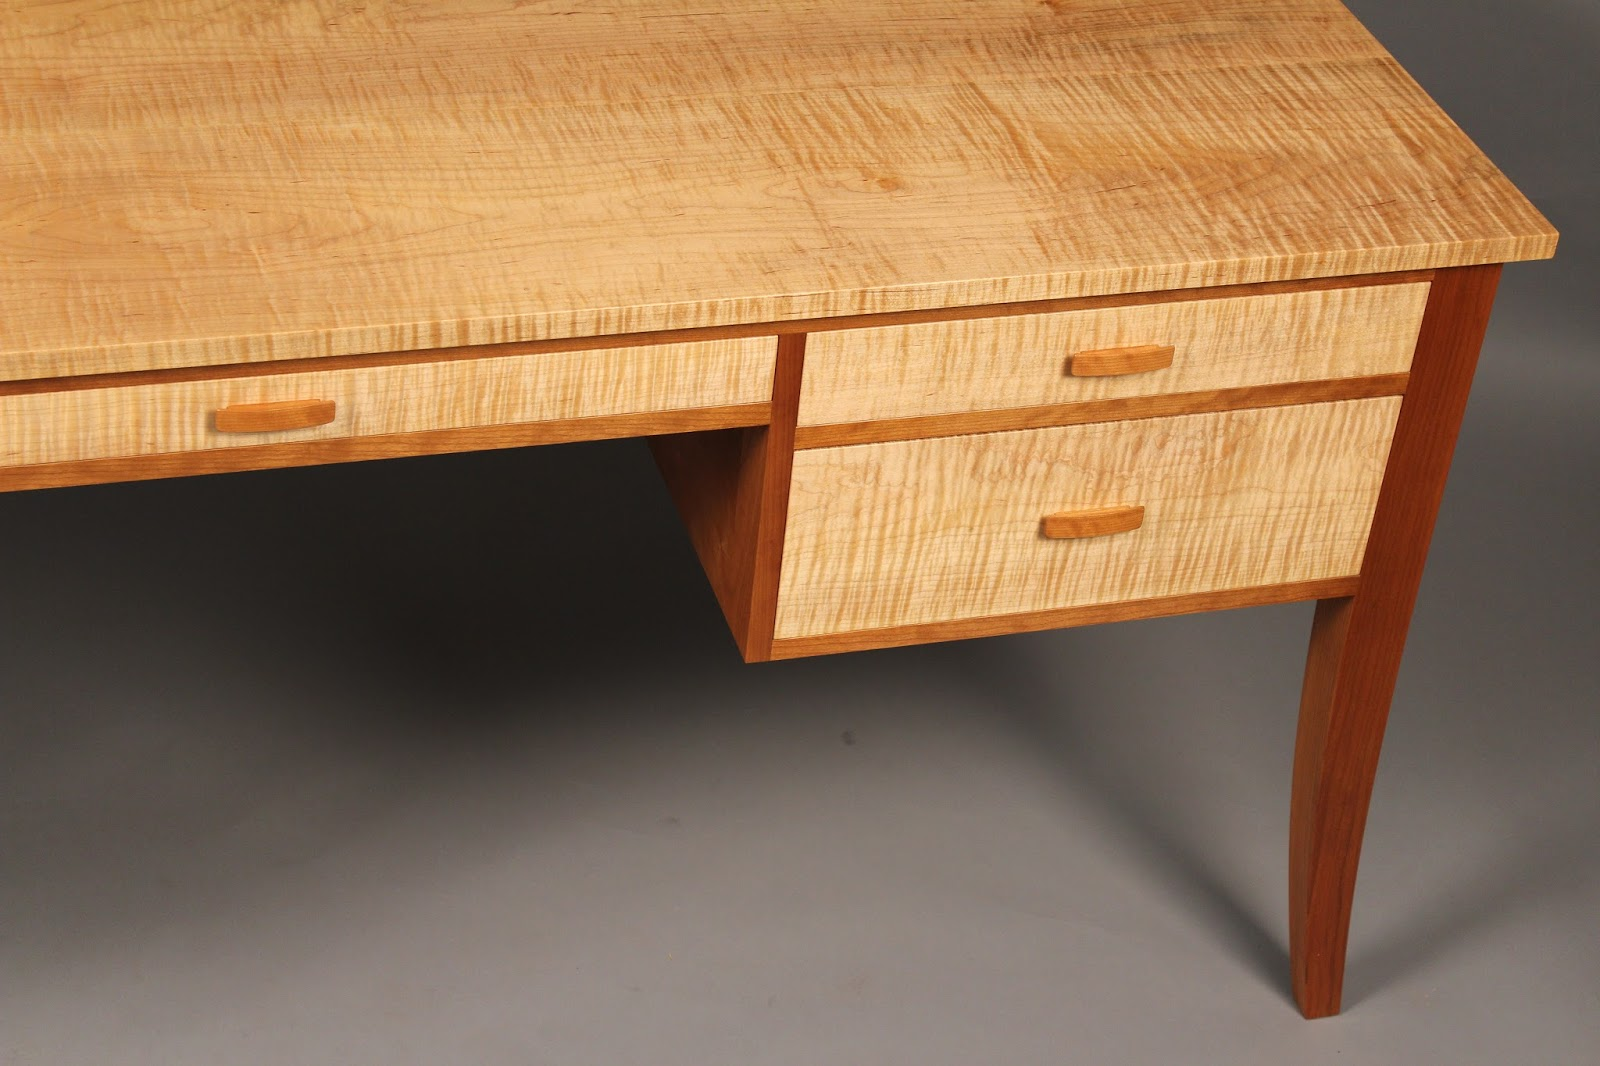 Fine handcrafted writing desk